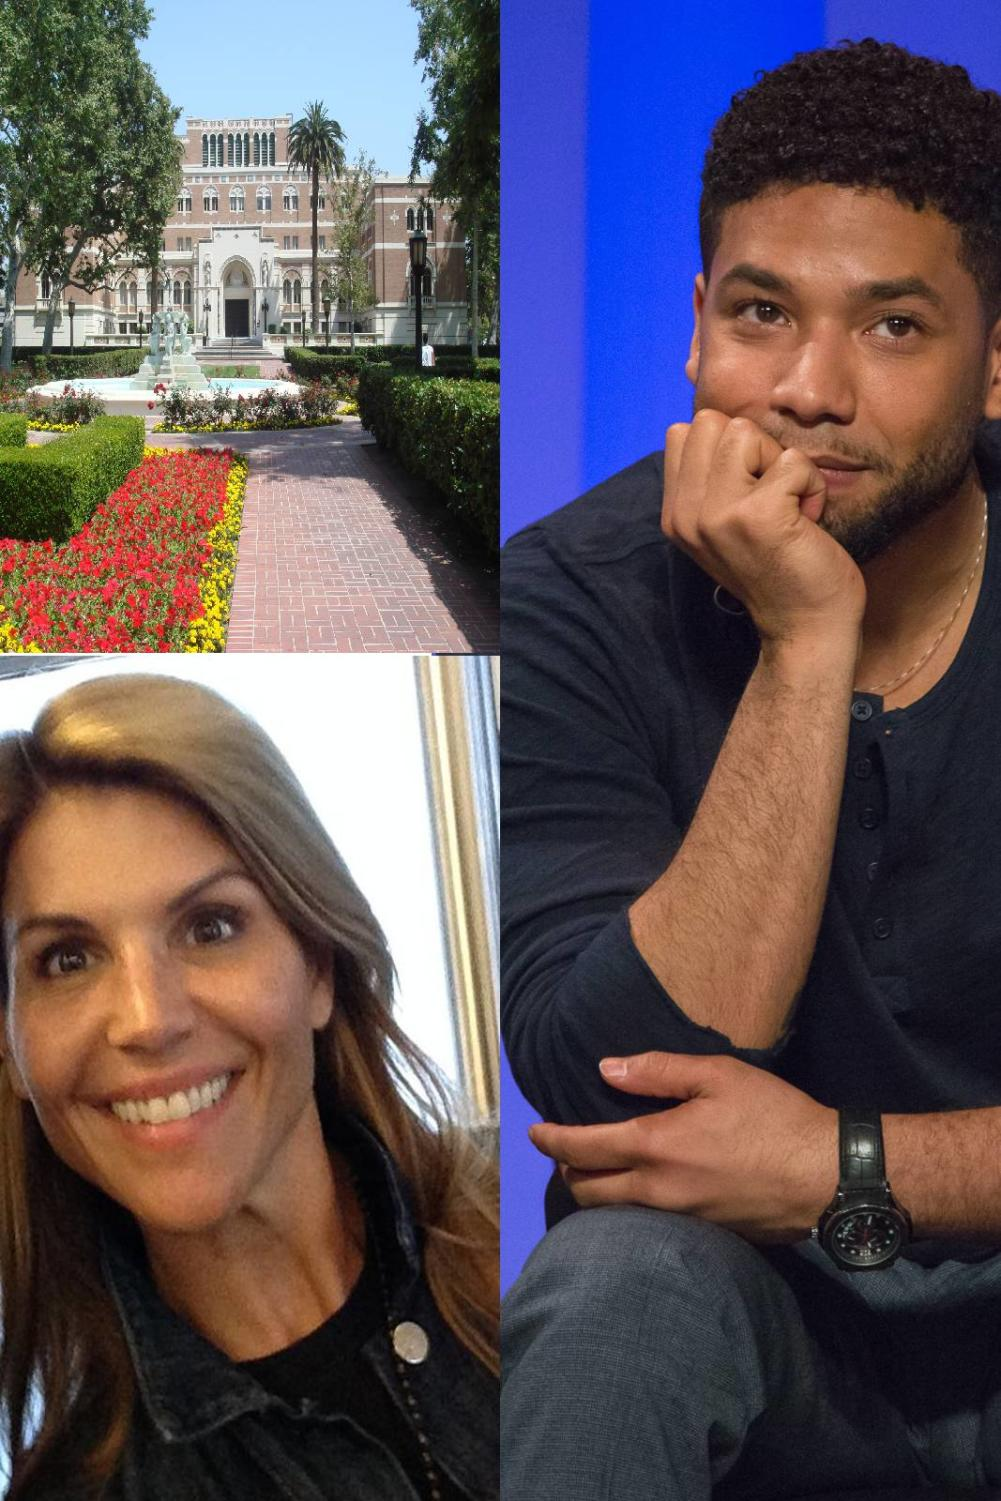 Jussie Smollett and Lori Loughlin both cheated the system. Loughlin's daughters both attended USC and have not yet been expelled. Images labeled for reuse.